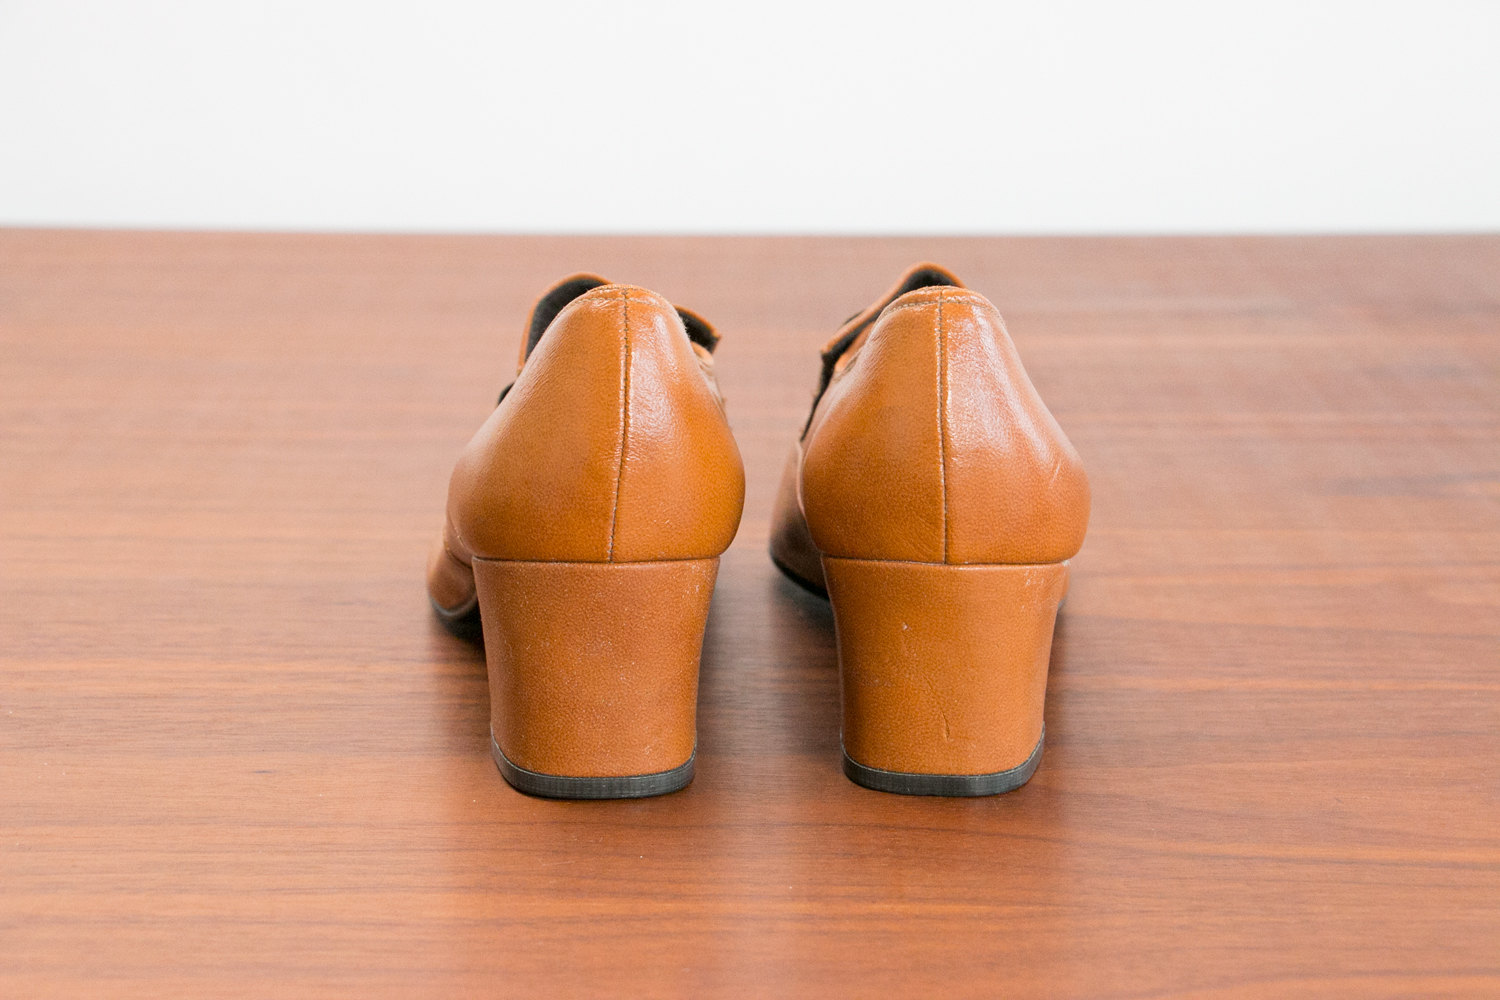 Vintage 1960's-1970's Deadstock / NOS Women's Shoes - JCPenney Gaymode - Size 8.5 M - Leather, Tan, Heals - Mid Century